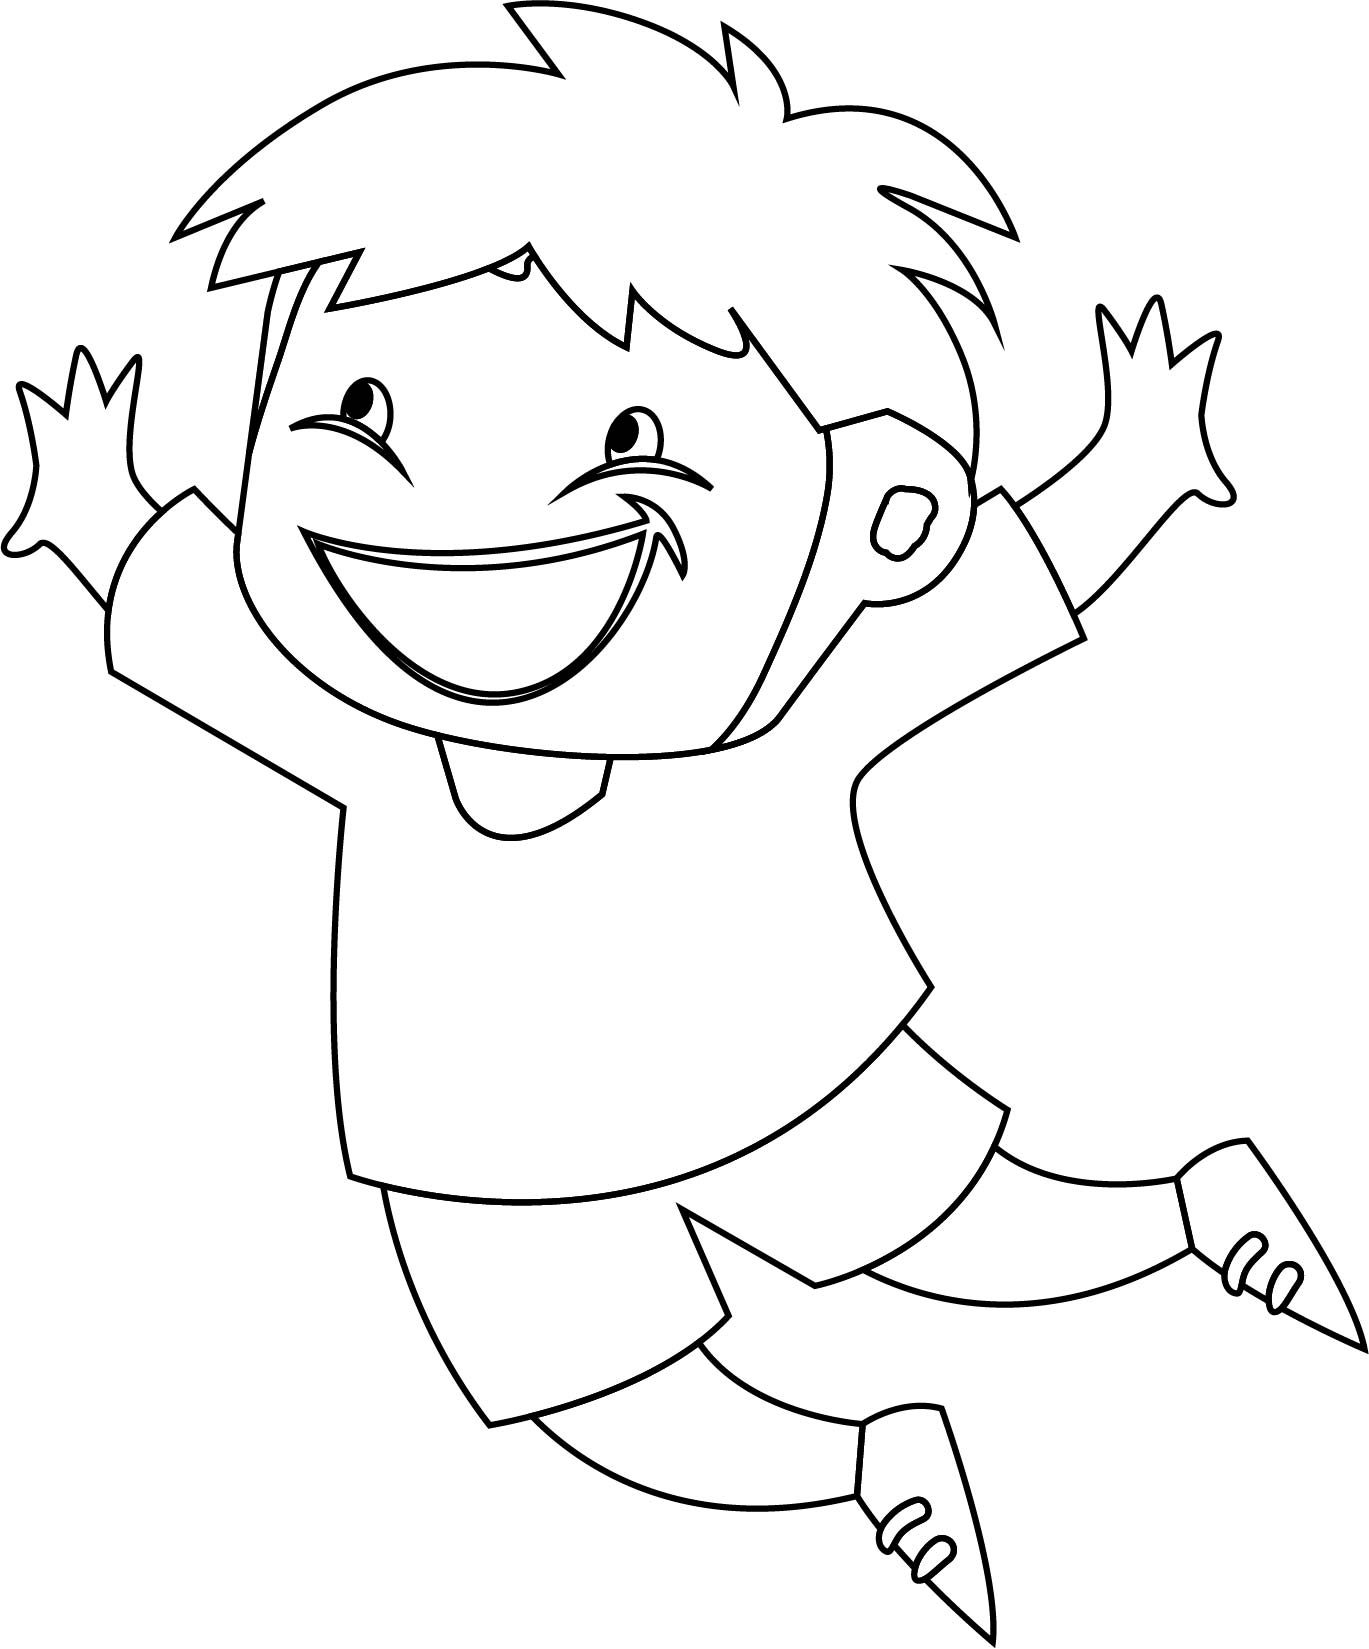 www coloring page com - children jump coloring page